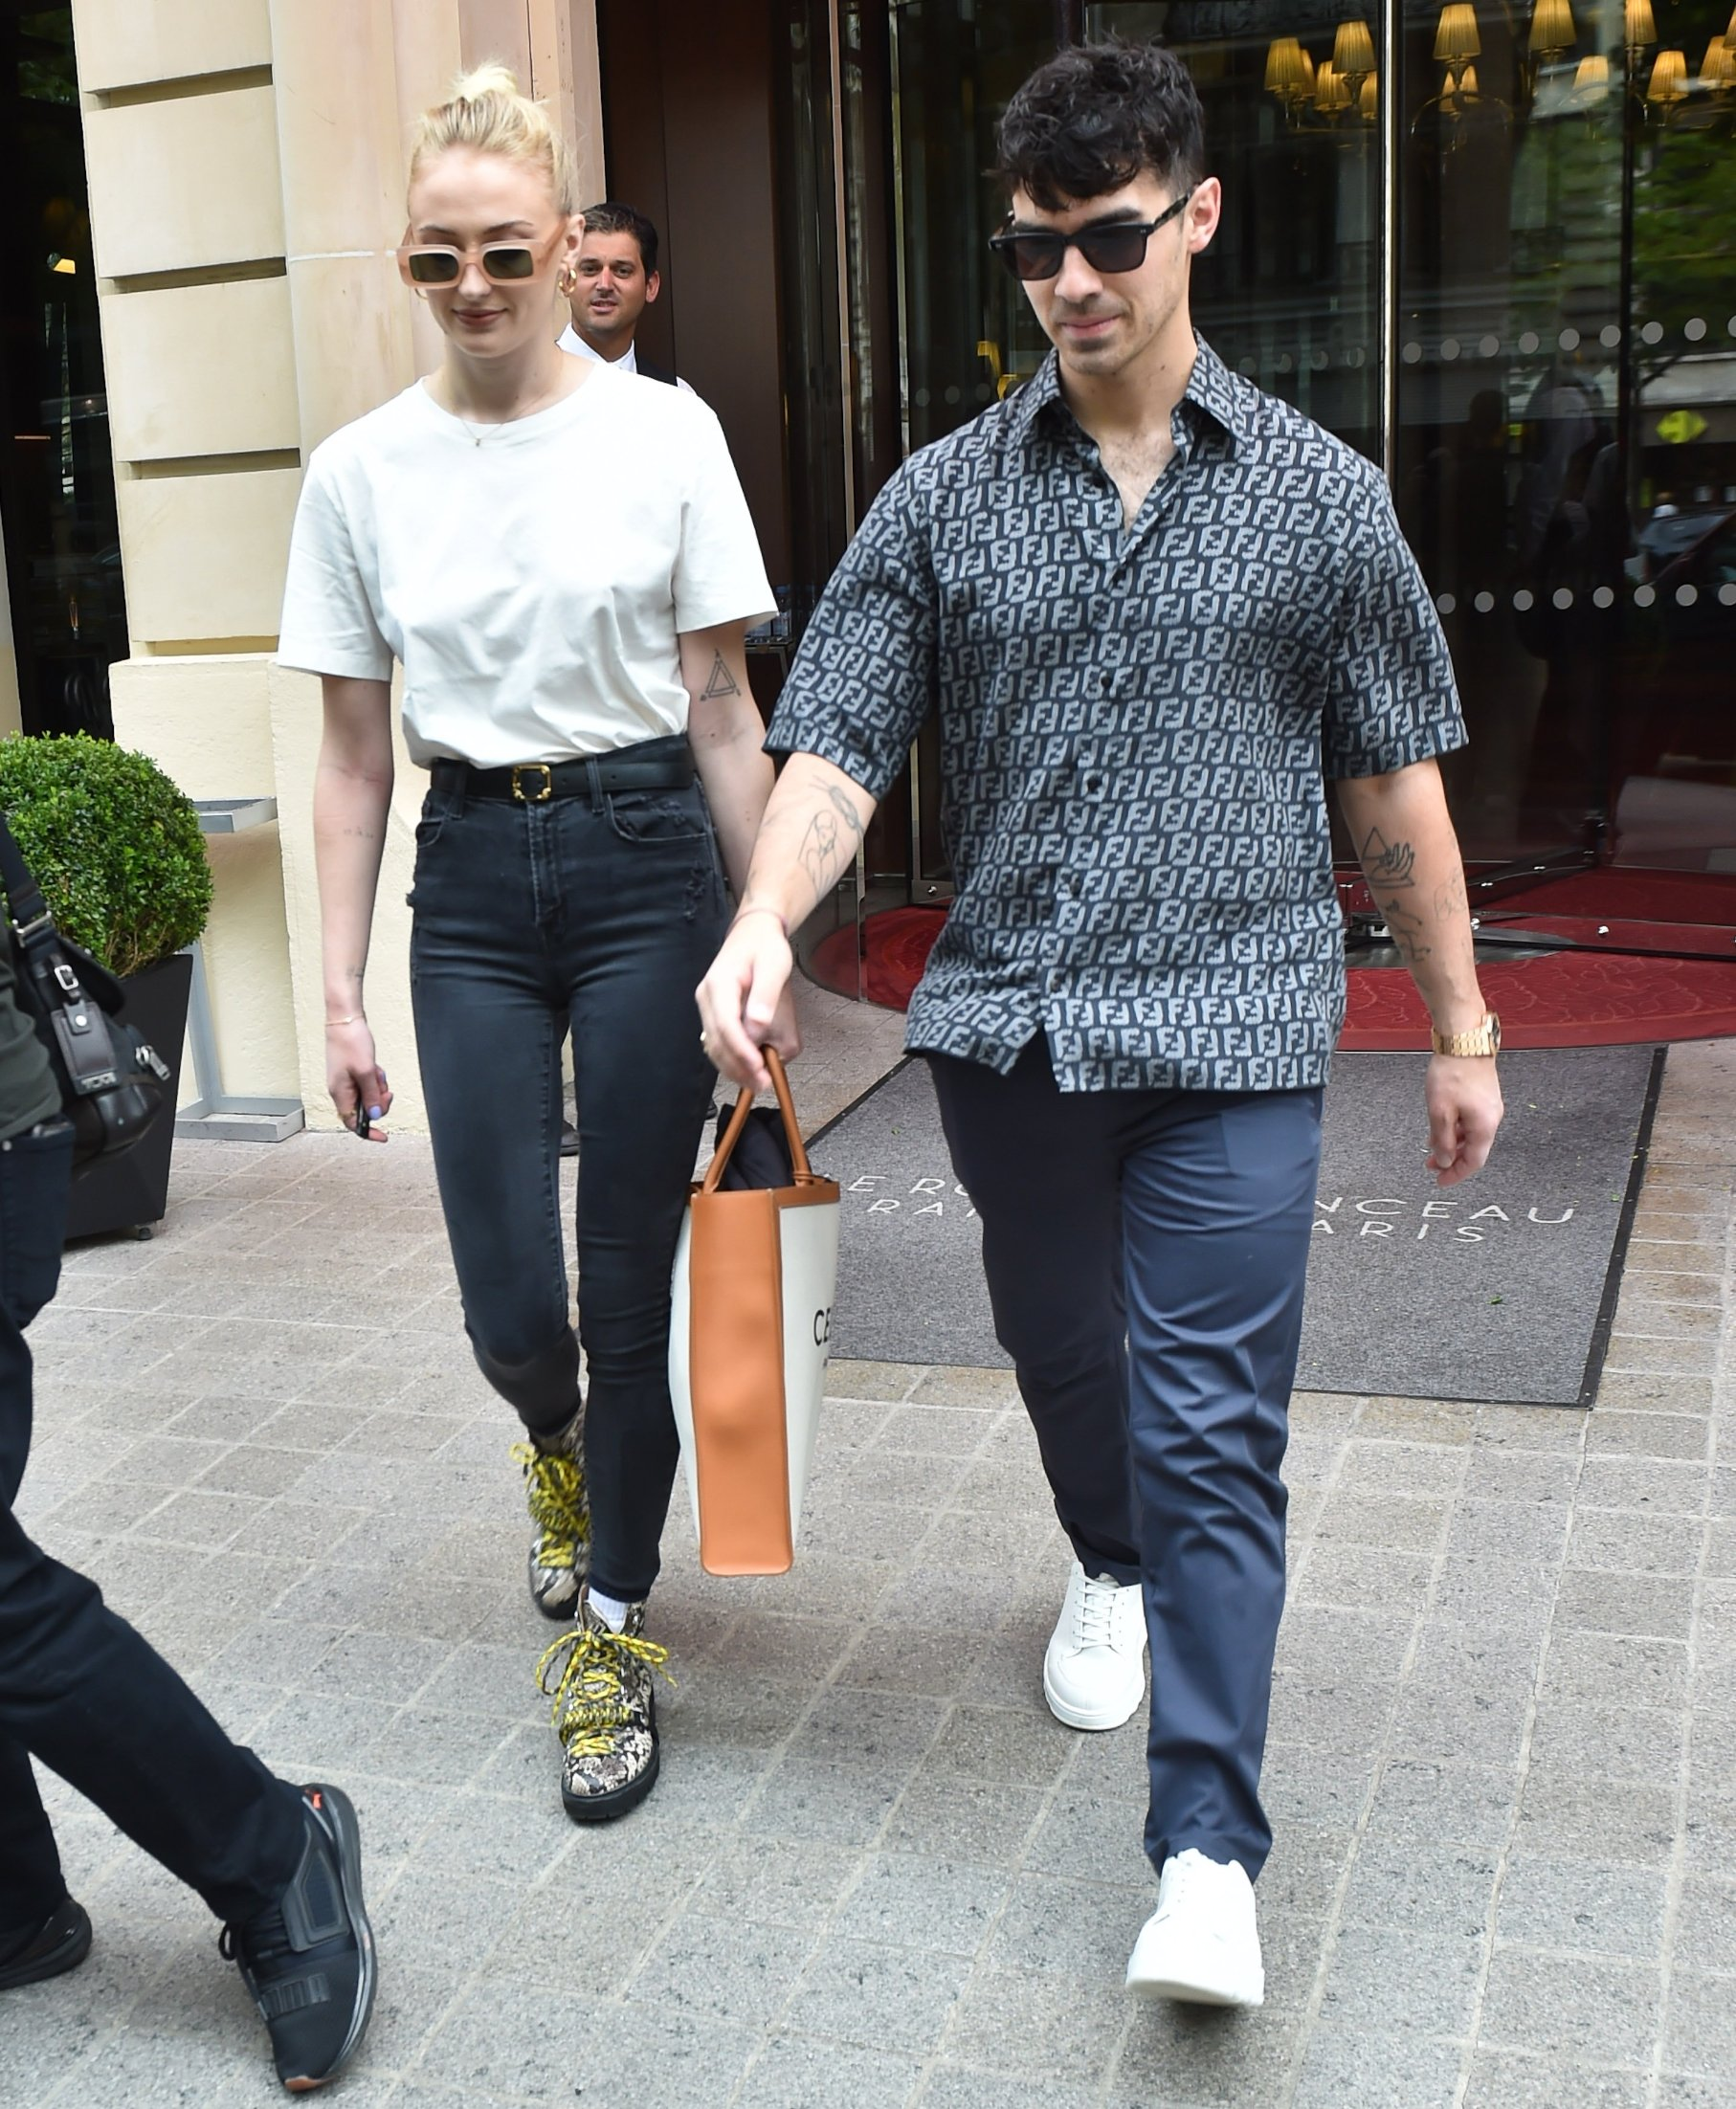 Sophie Turner, Joe Jonas & Nick Jonas and Priyanka Chopra hire a boat to cruise the River Seine in Paris. 24 Jun 2019, Image: 451096030, License: Rights-managed, Restrictions: World Rights, Model Release: no, Credit line: Profimedia, Mega Agency